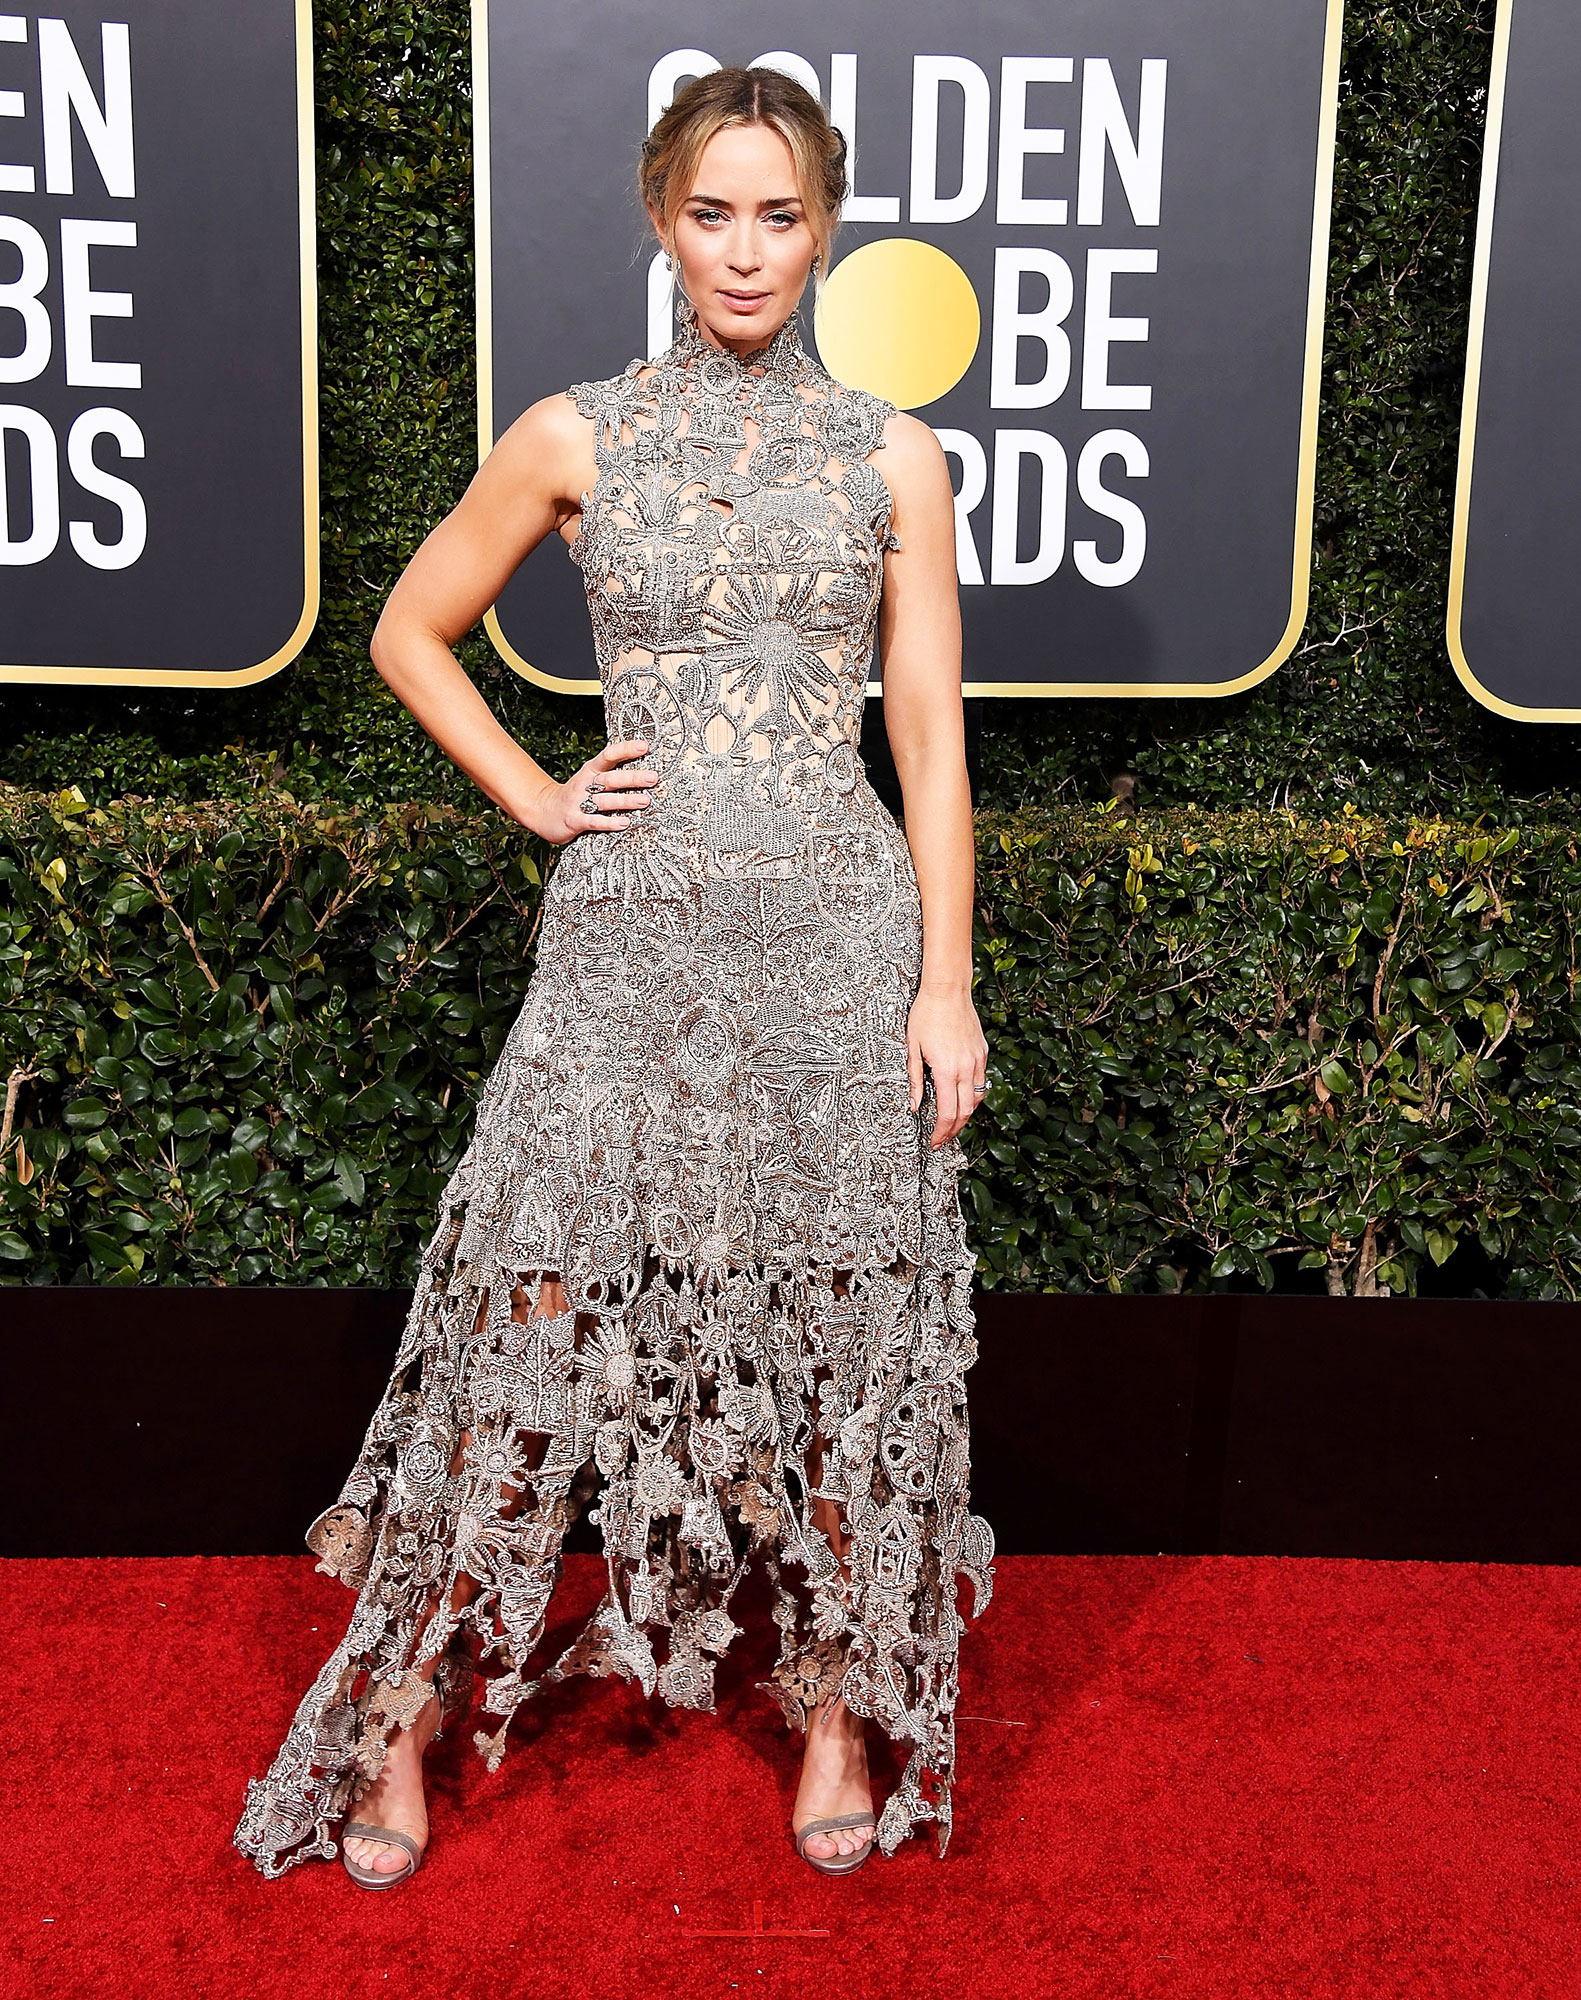 Emily Blunt arrives at the 76th Annual Golden Globe Awards - In a custom Alexander McQueen creation and Neil Lane jewels.